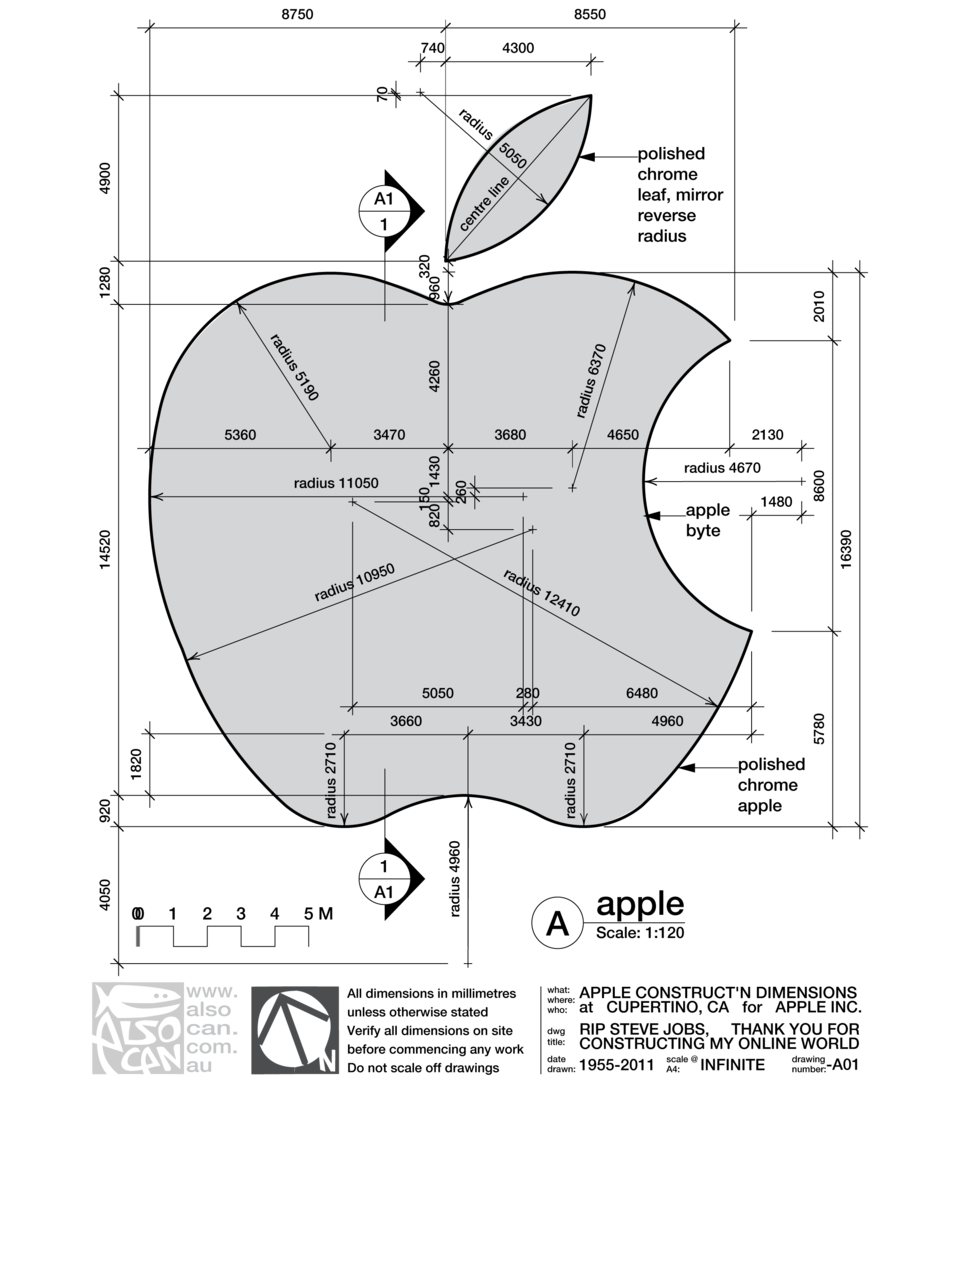 Arcade drawing blueprint. Apple logo explanation graphic